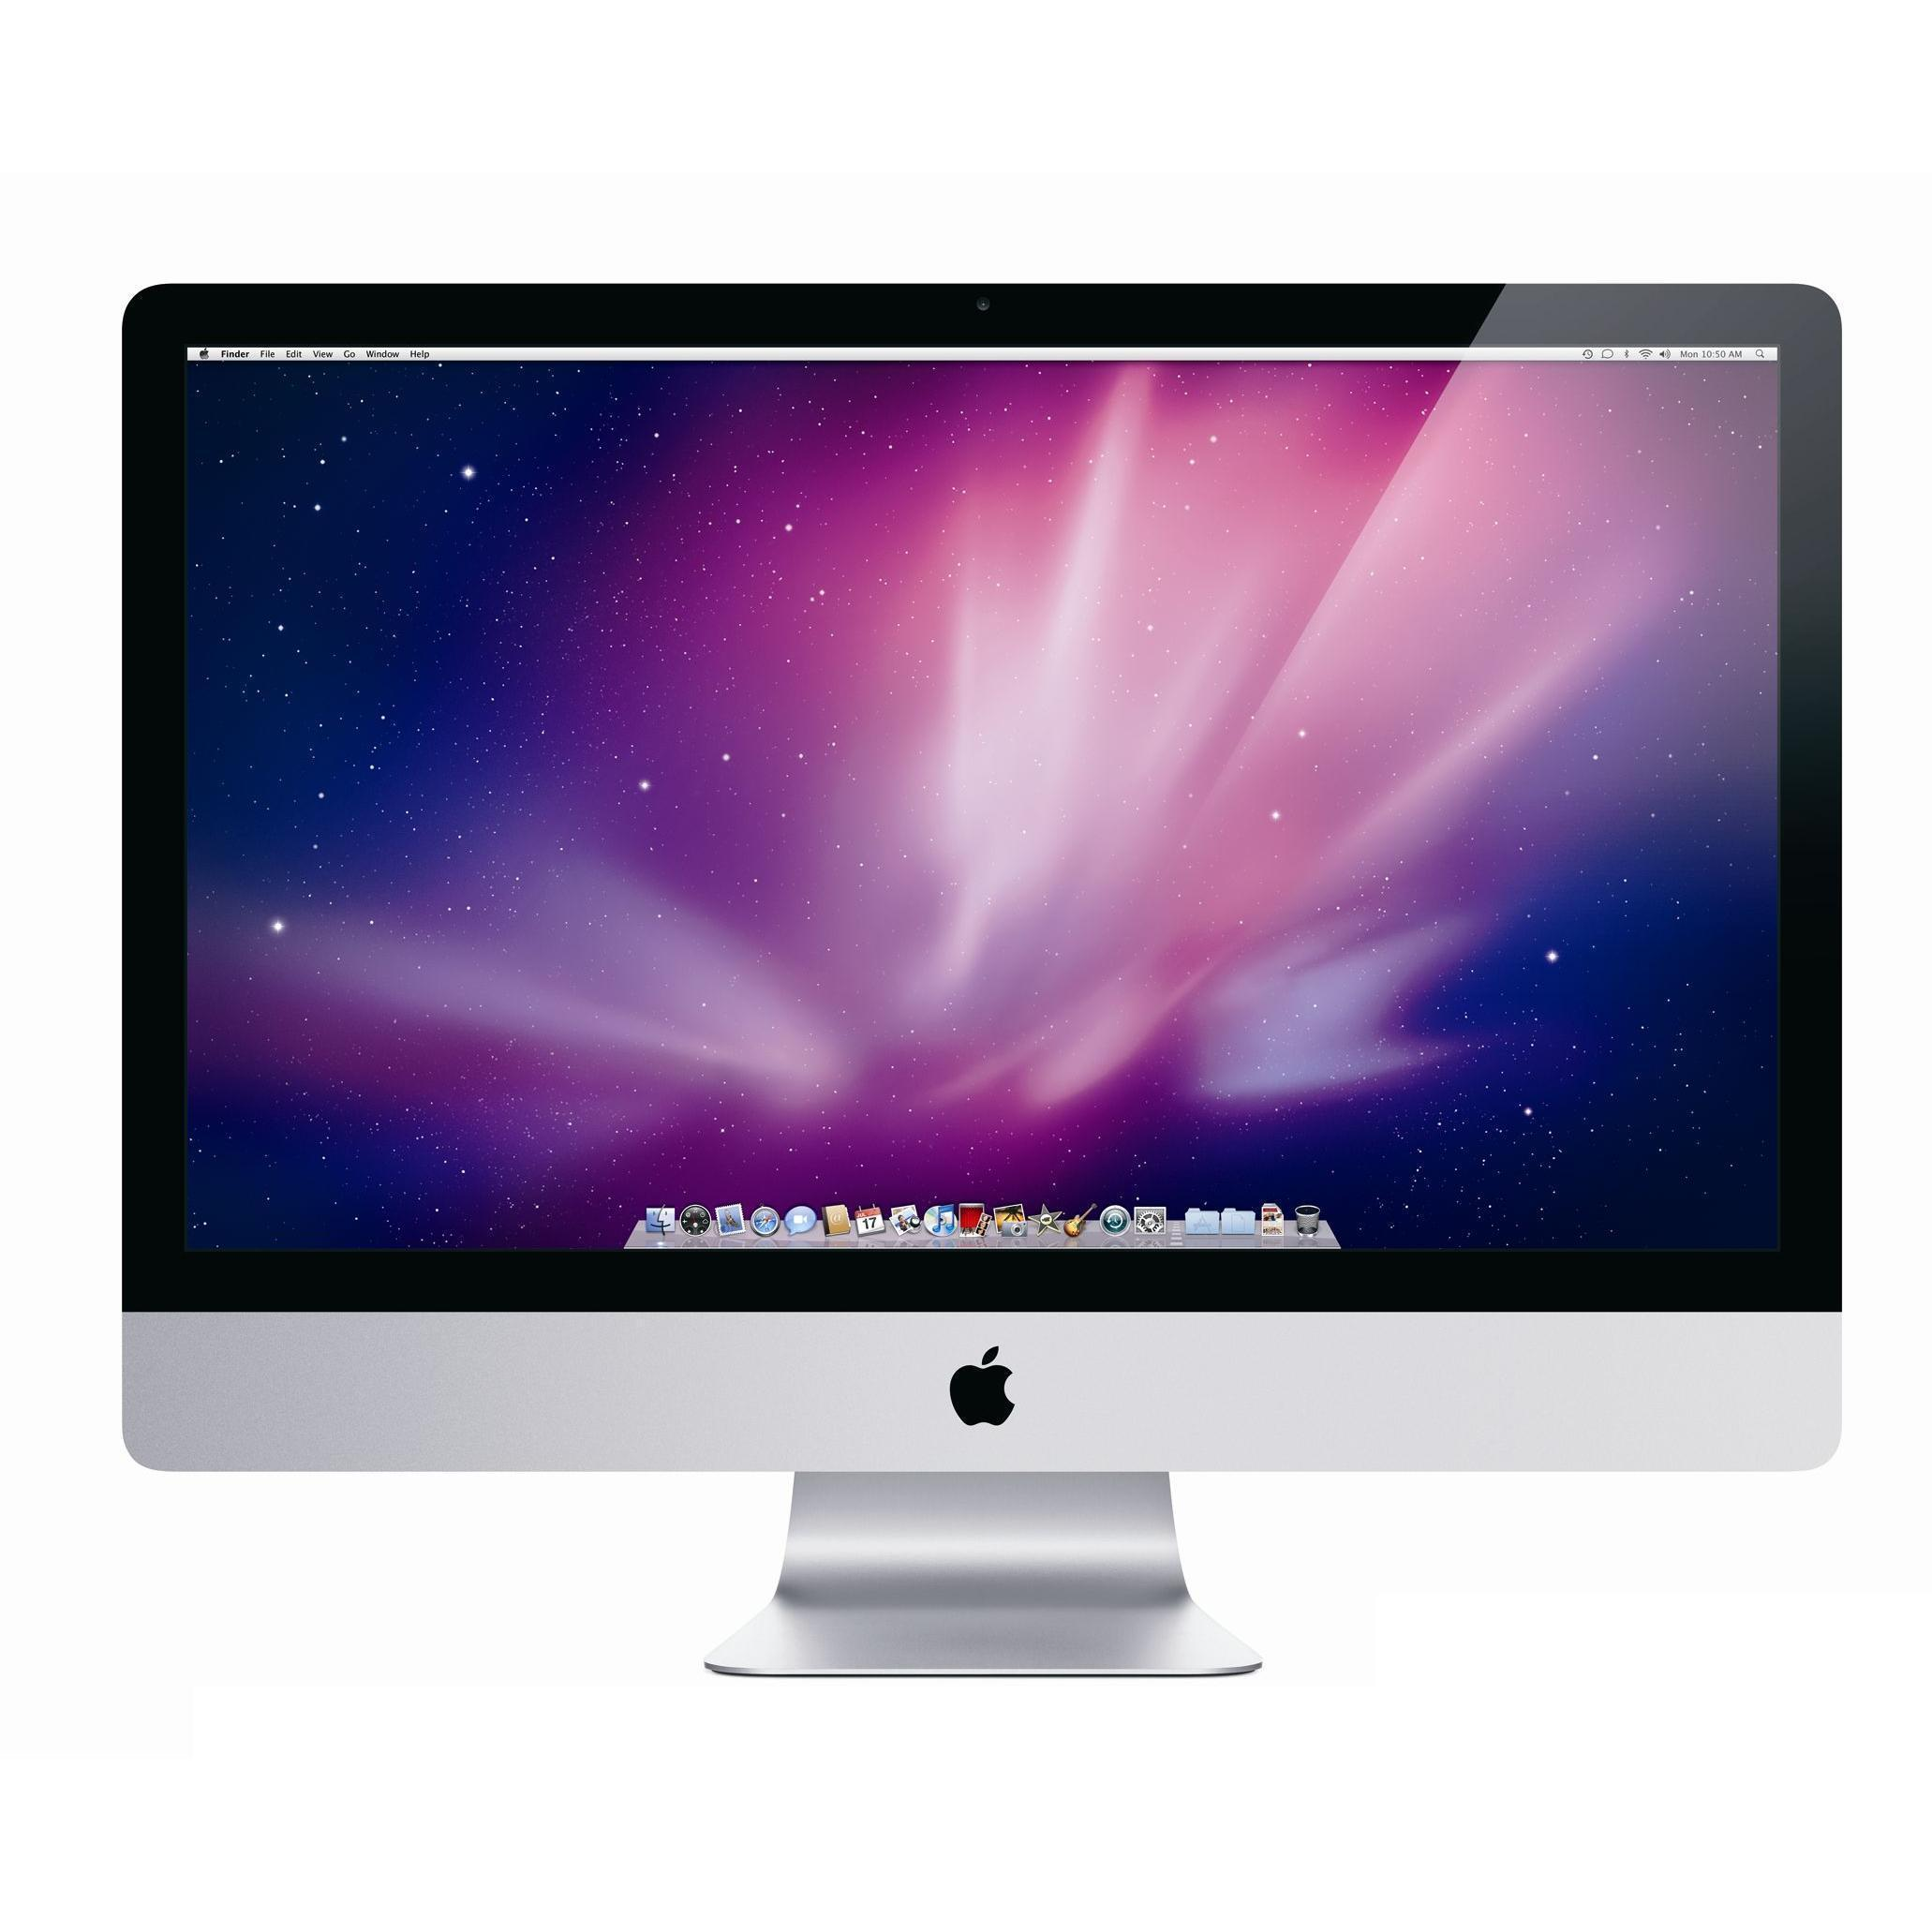 iMac 27-inch (October 2012) Core i5 3.2GHz - HDD 1 TB - 16GB AZERTY - French